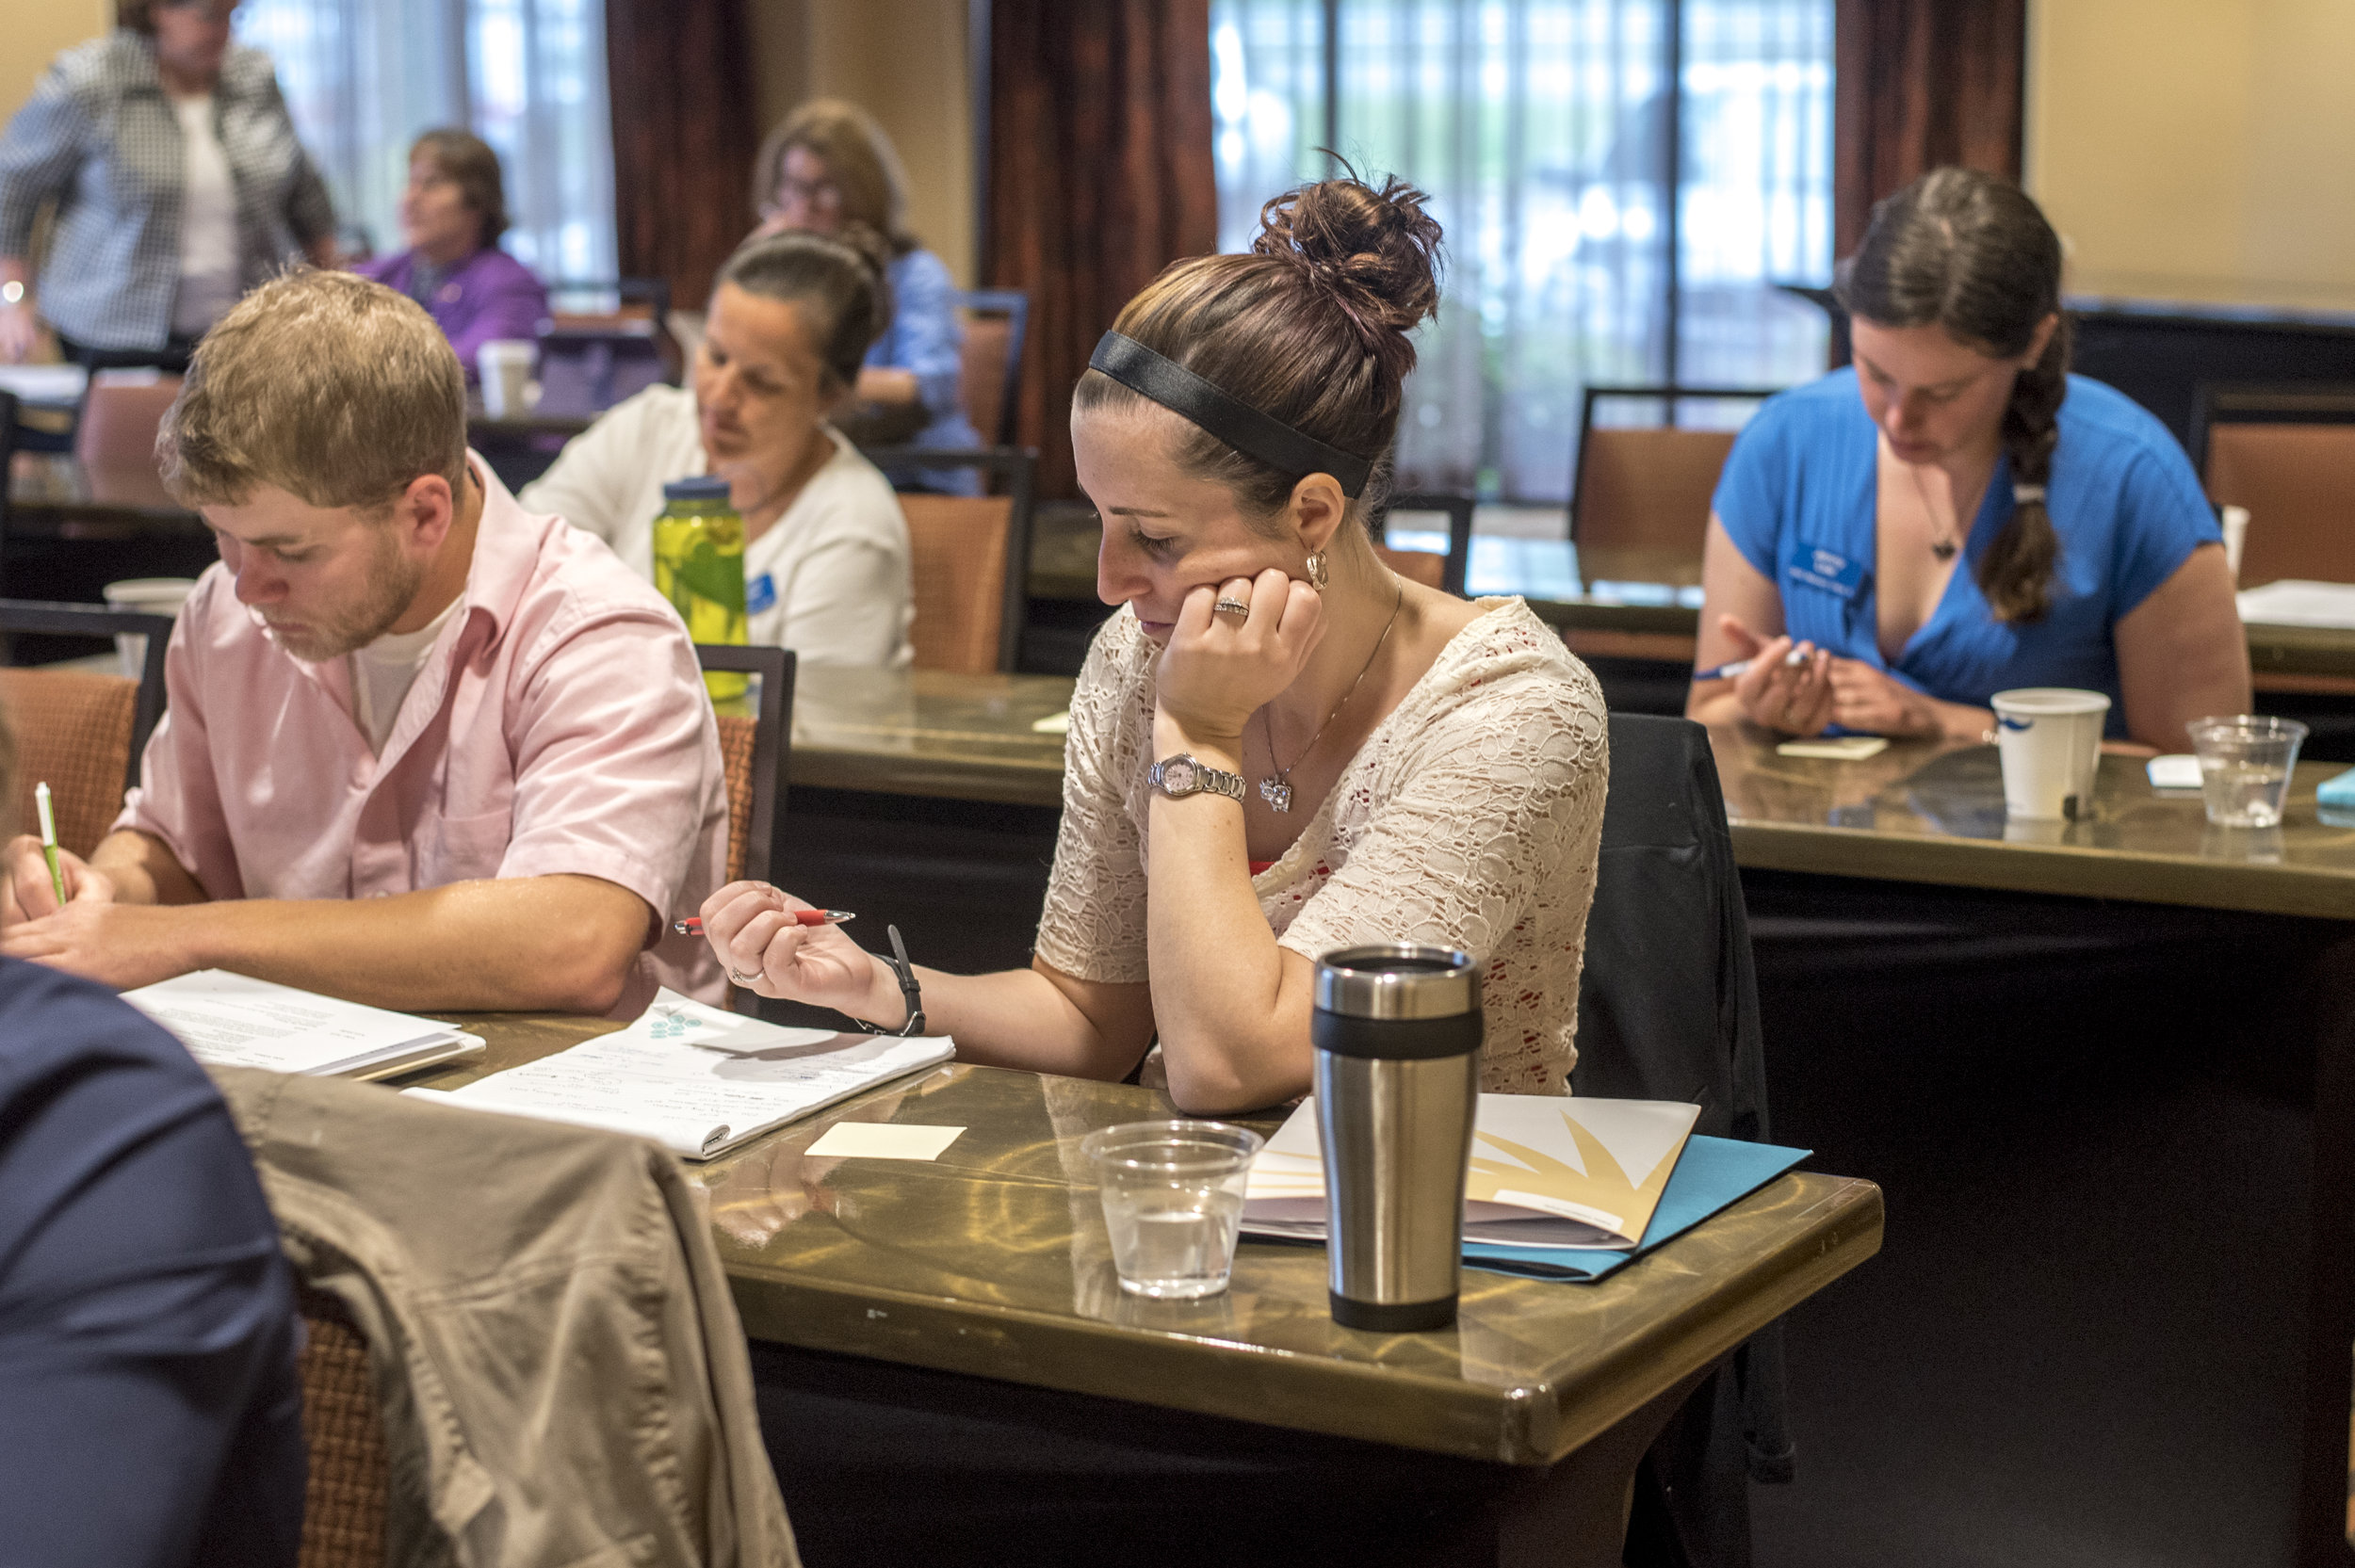 Taking notes during a meeting. Image by Edwin Remsberg